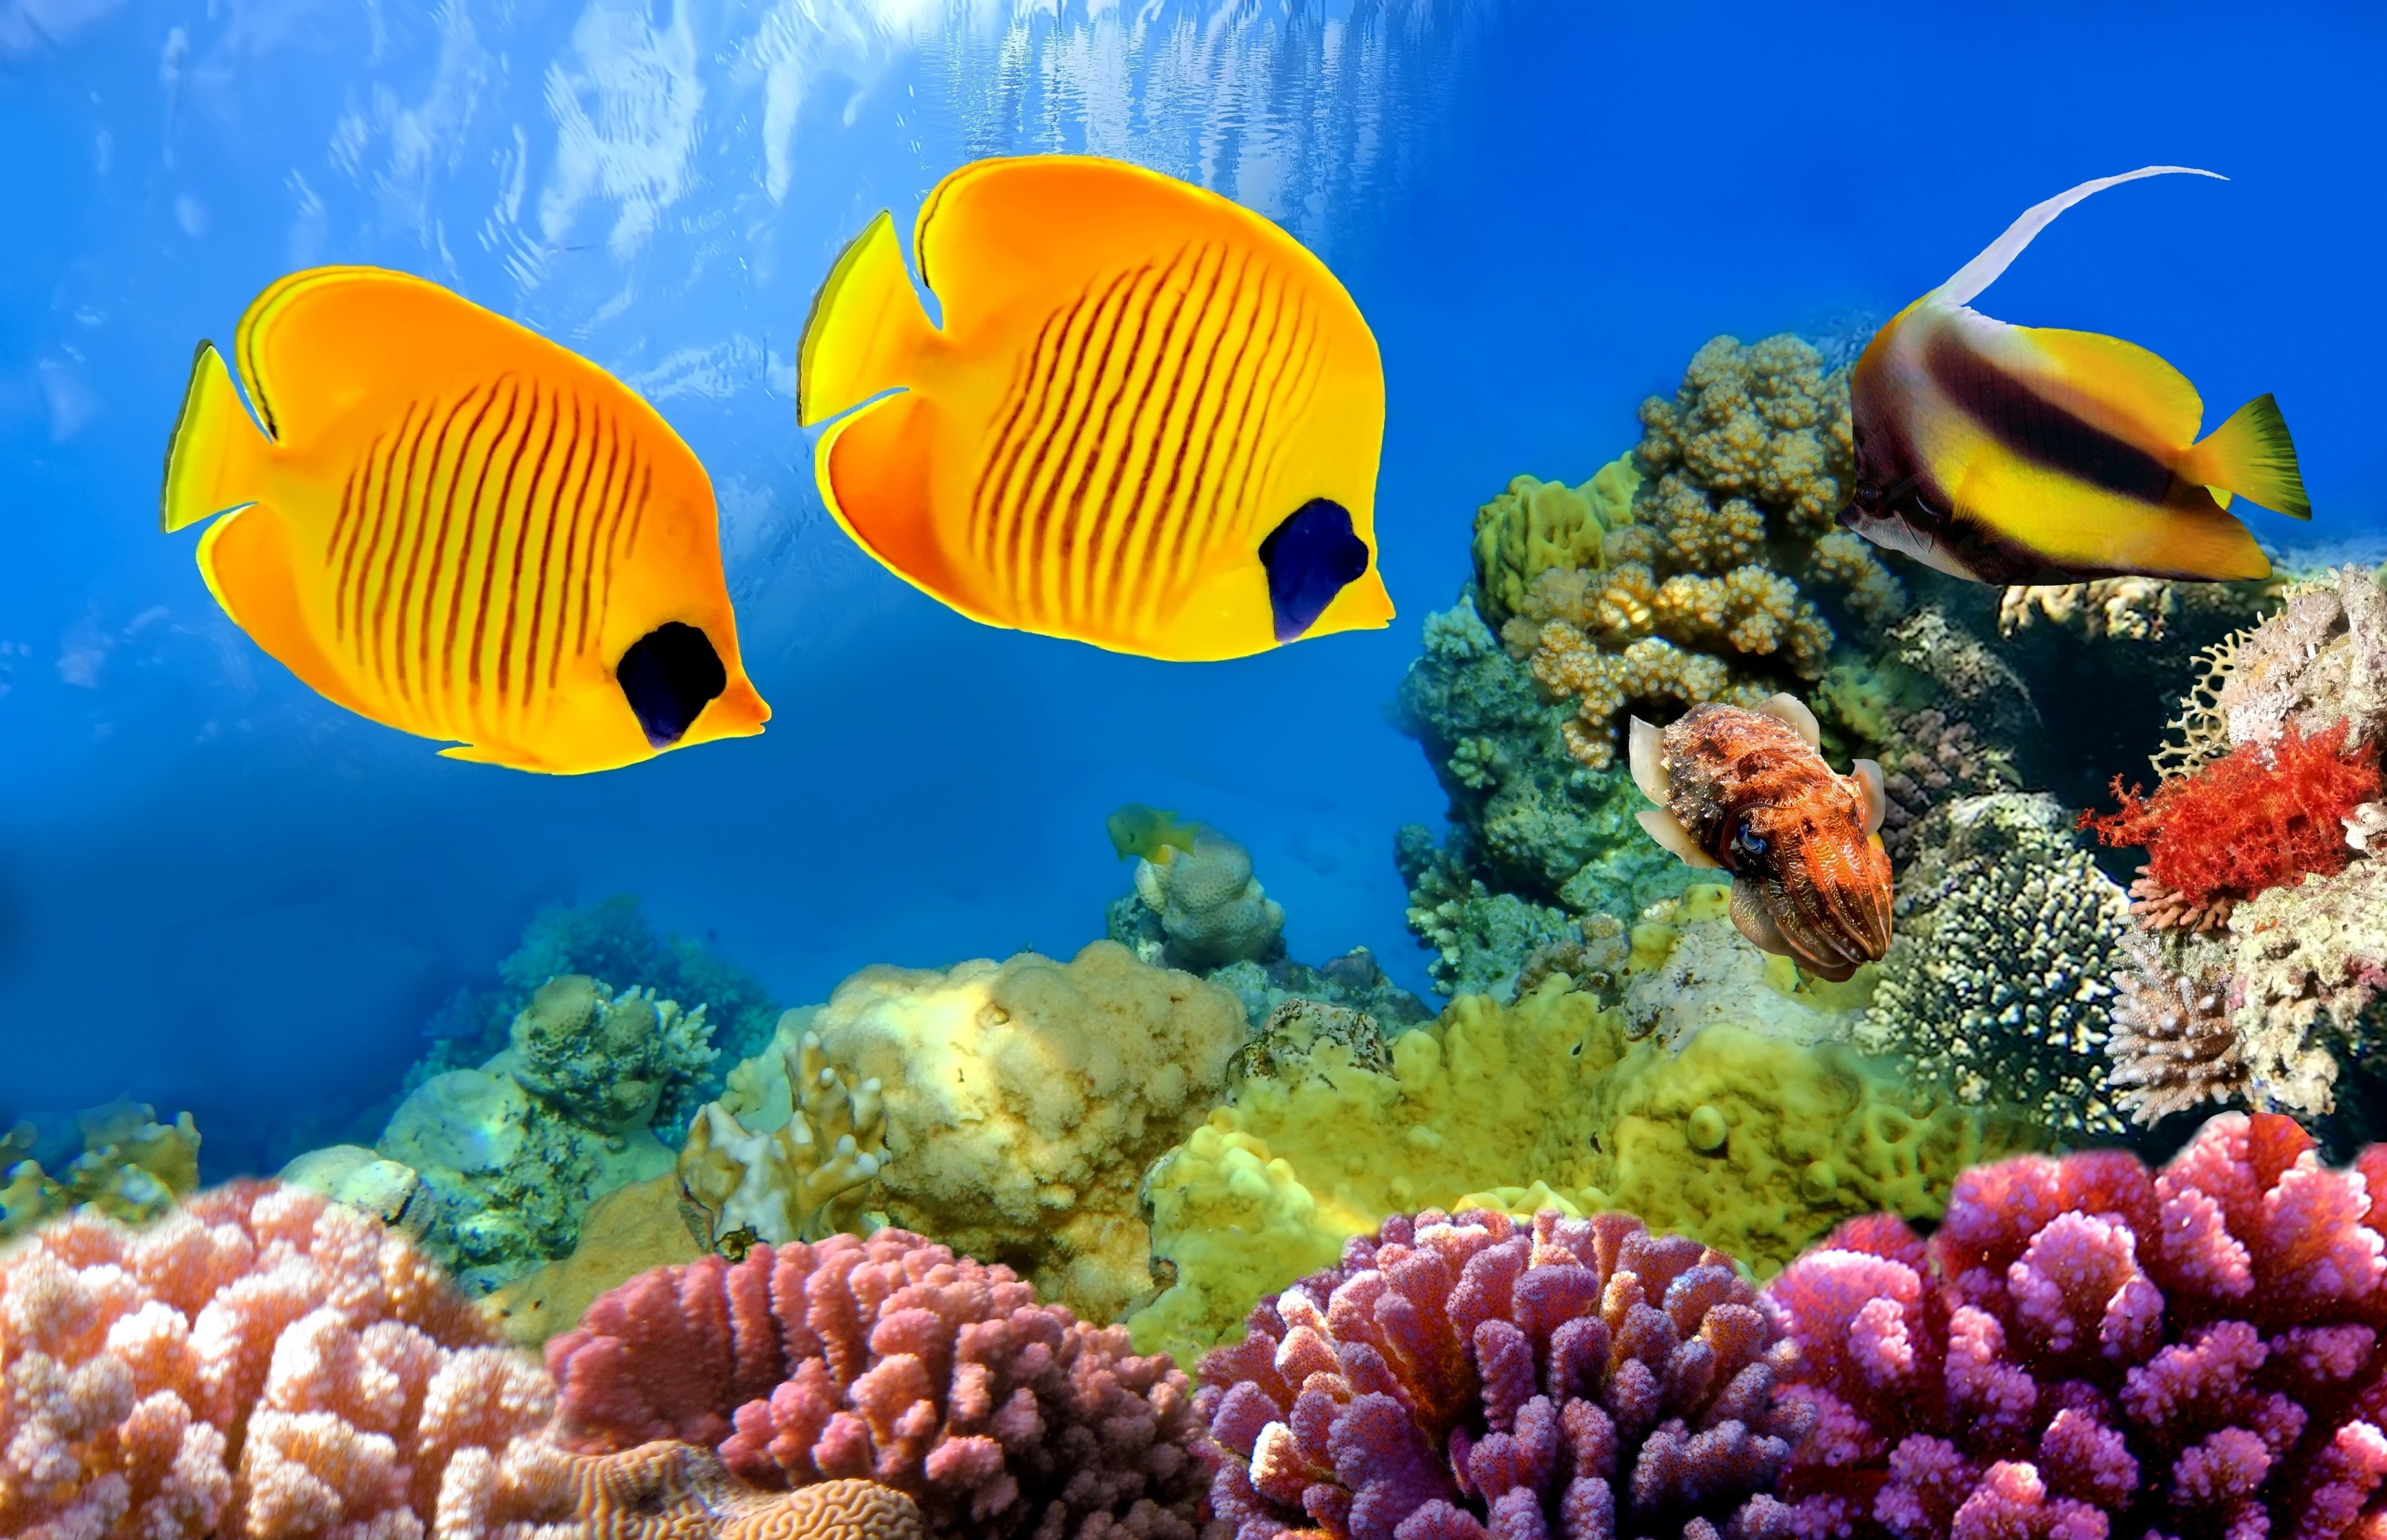 Underwater Fish Fishes Ocean Sea Tropical Reef Wallpaper